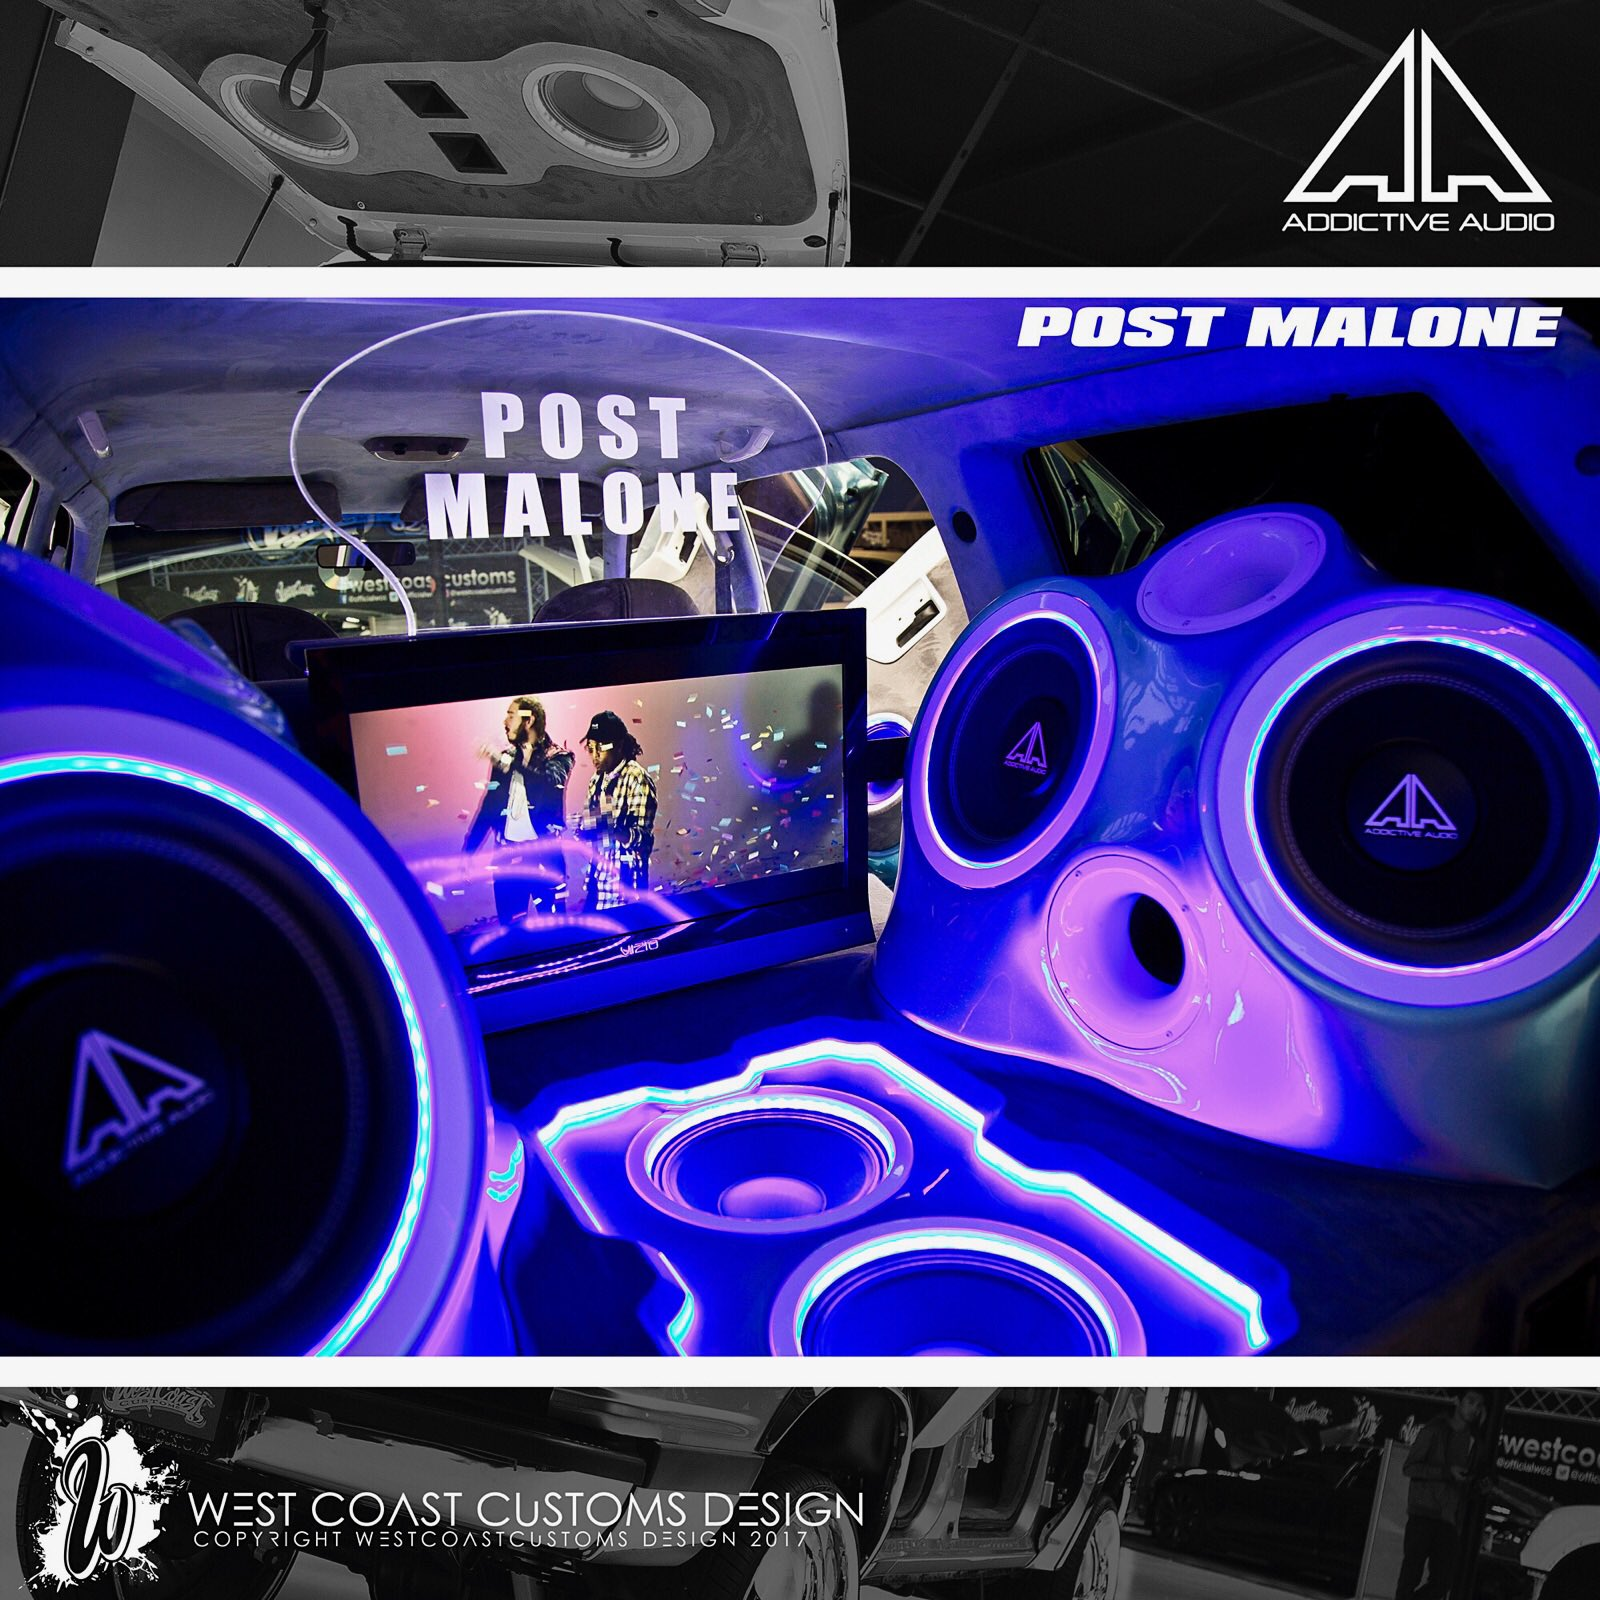 west coast customs on twitter beautiful addictiveaudio custom sound installation for client. Black Bedroom Furniture Sets. Home Design Ideas